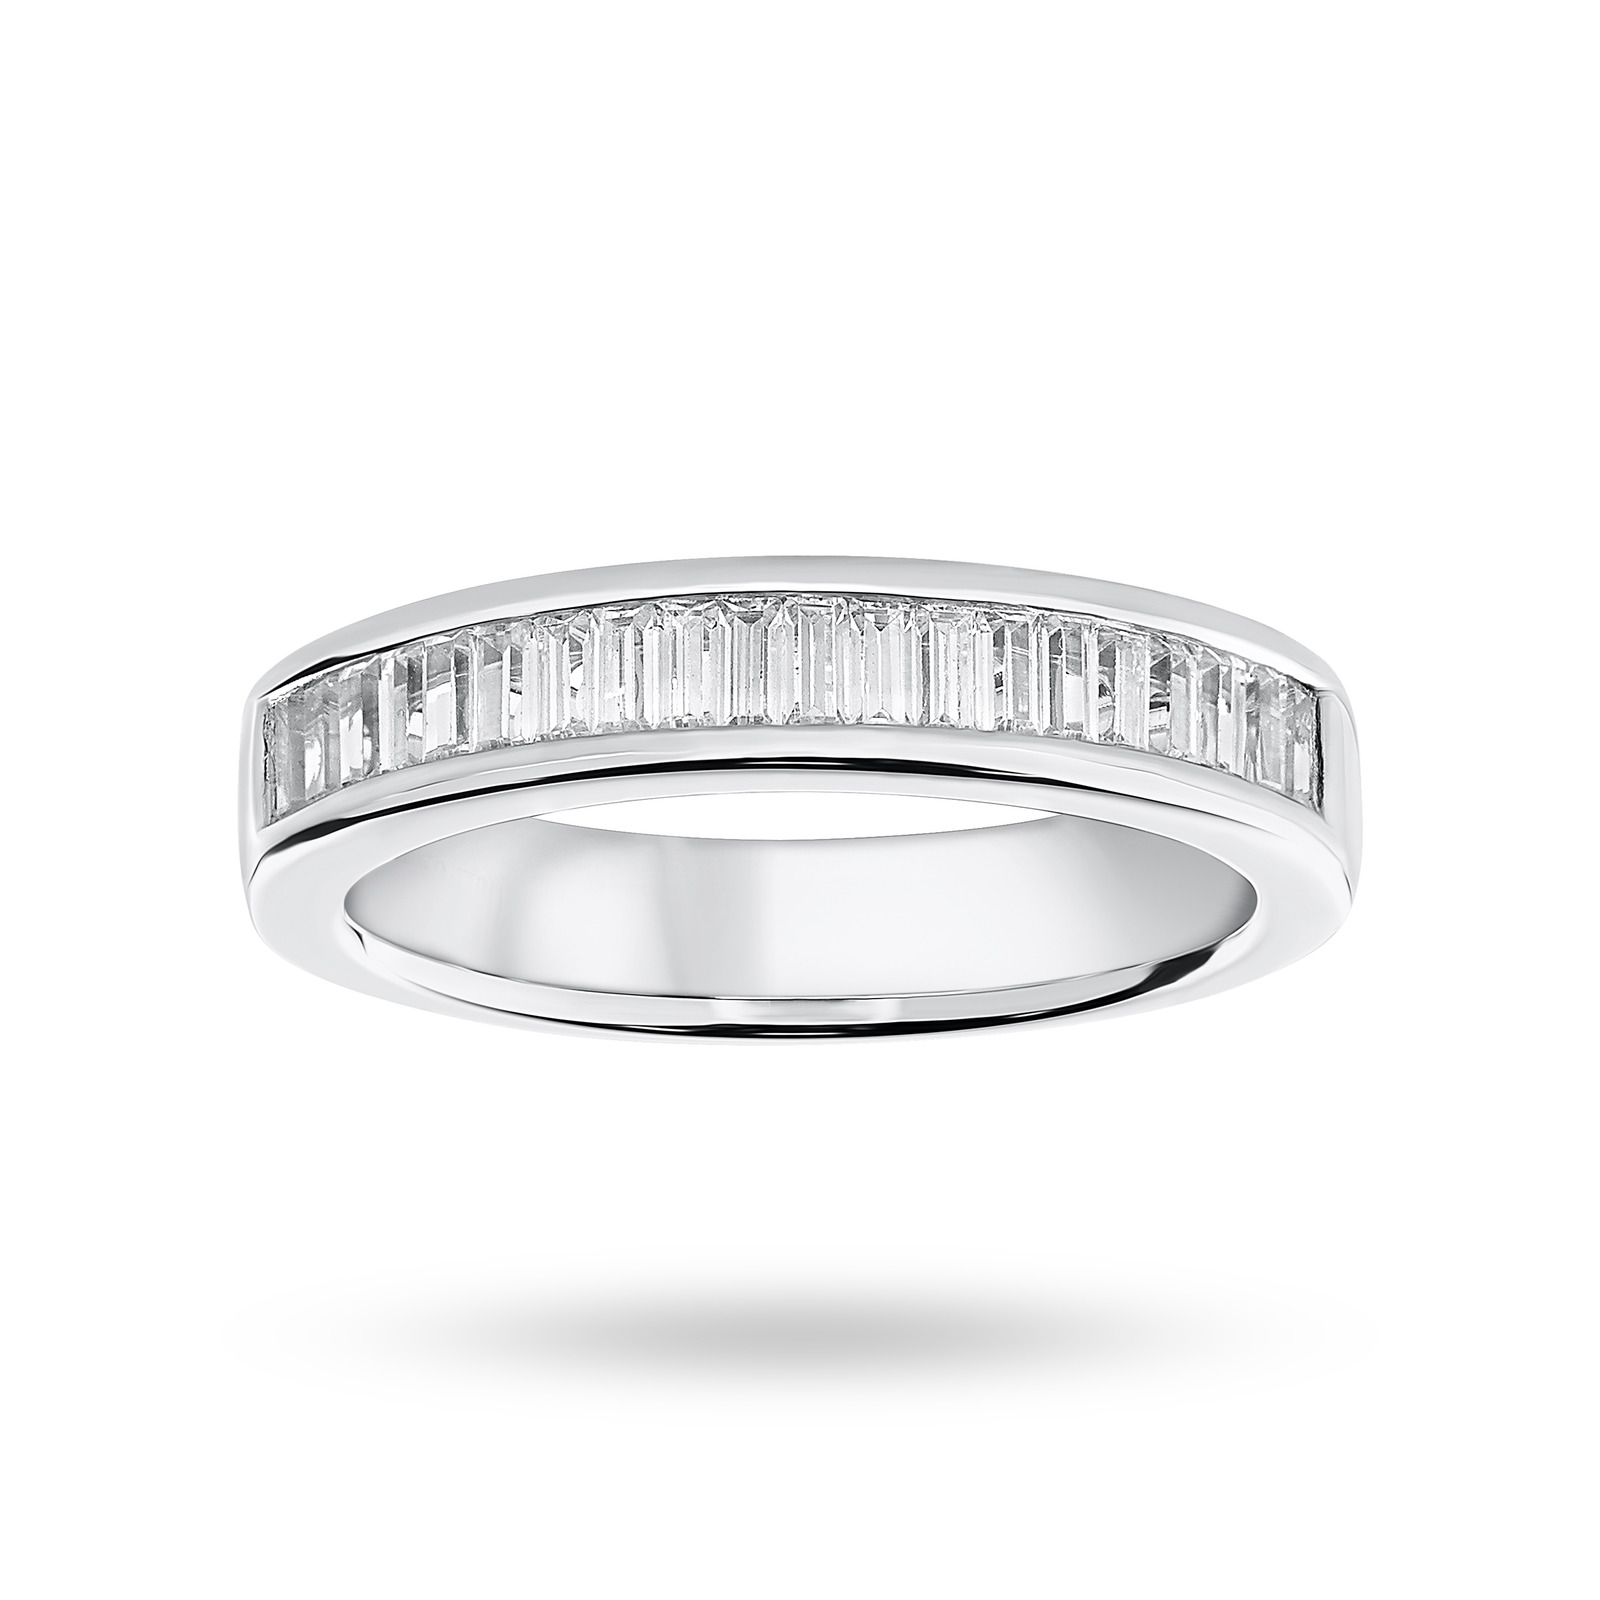 Platinum 0.75 Carat Baguette Cut Half Eternity Ring